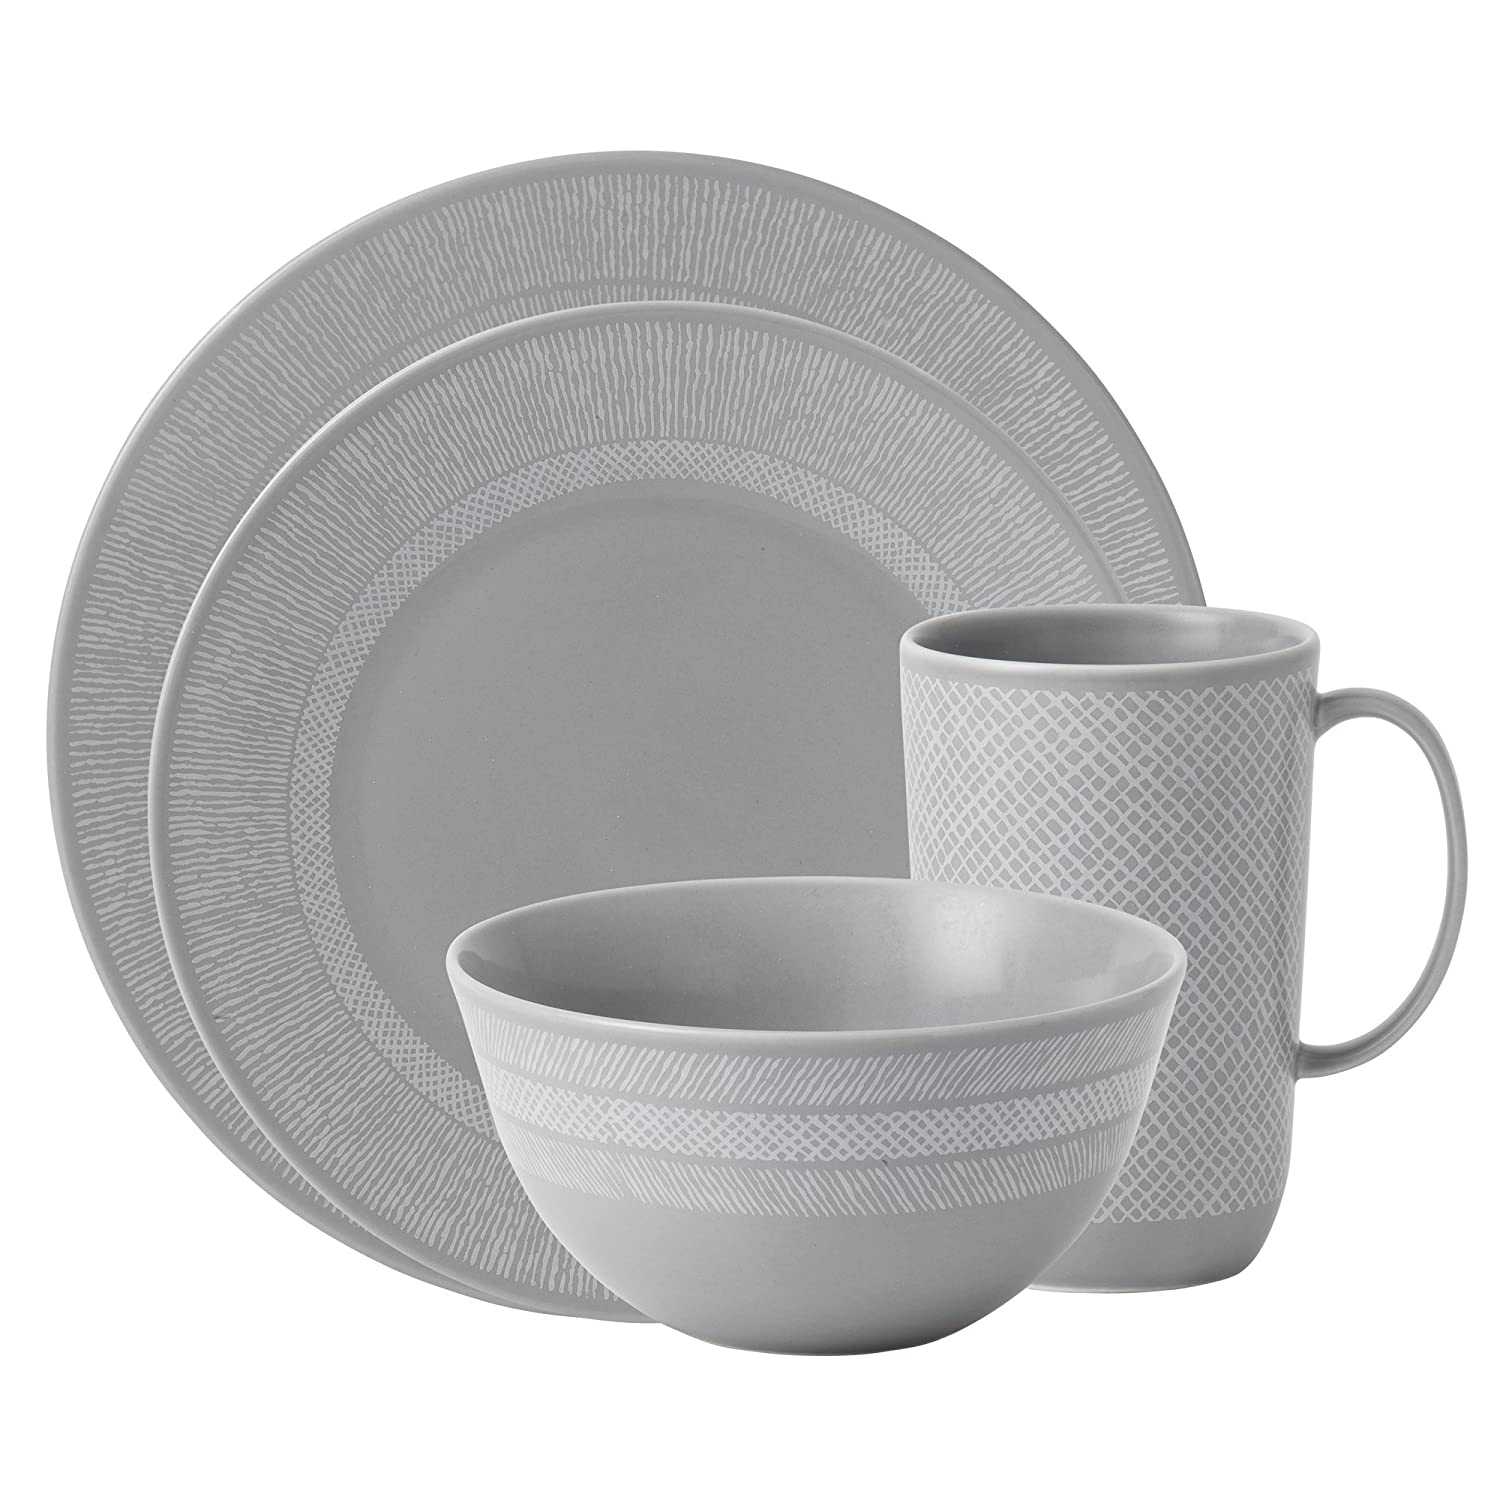 amazoncom wedgwood vera wang simplicity gray 4piece place setting dinnerware sets dinnerware sets